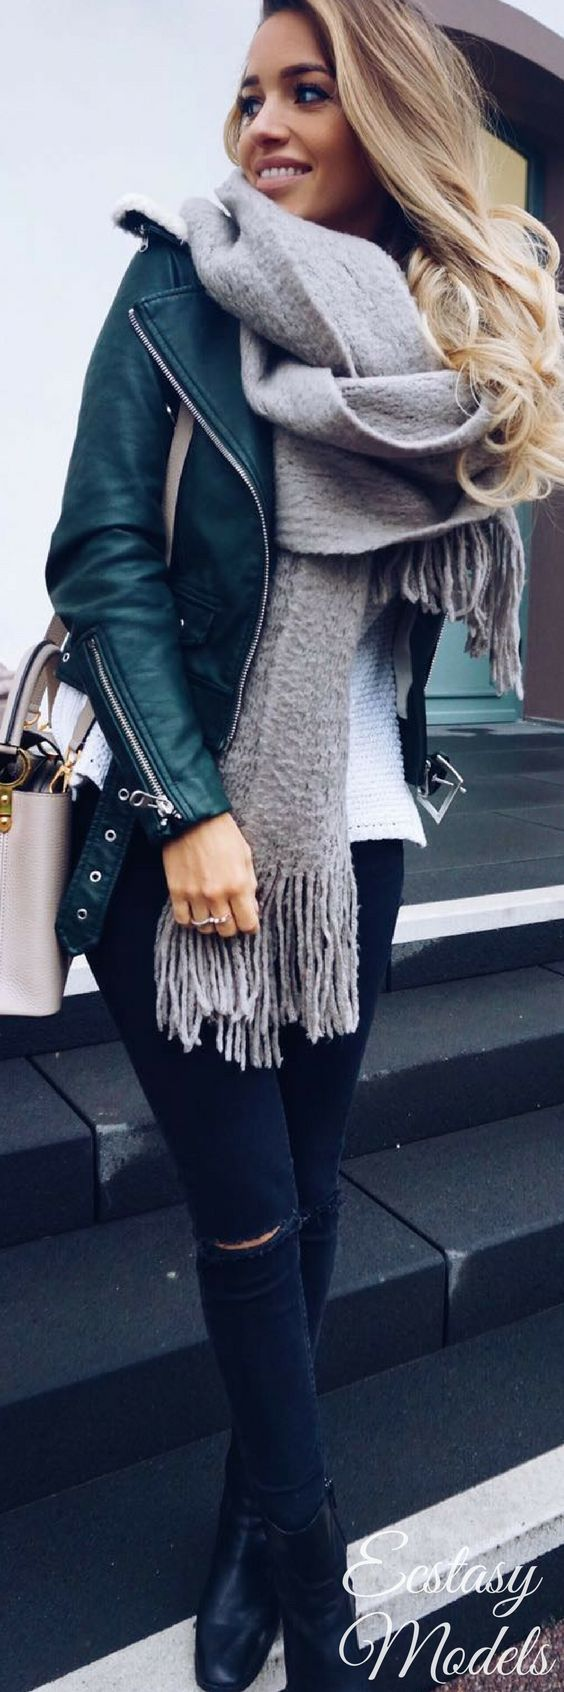 Best 25+ Cozy winter outfits ideas on Pinterest | Winter cardigan ...